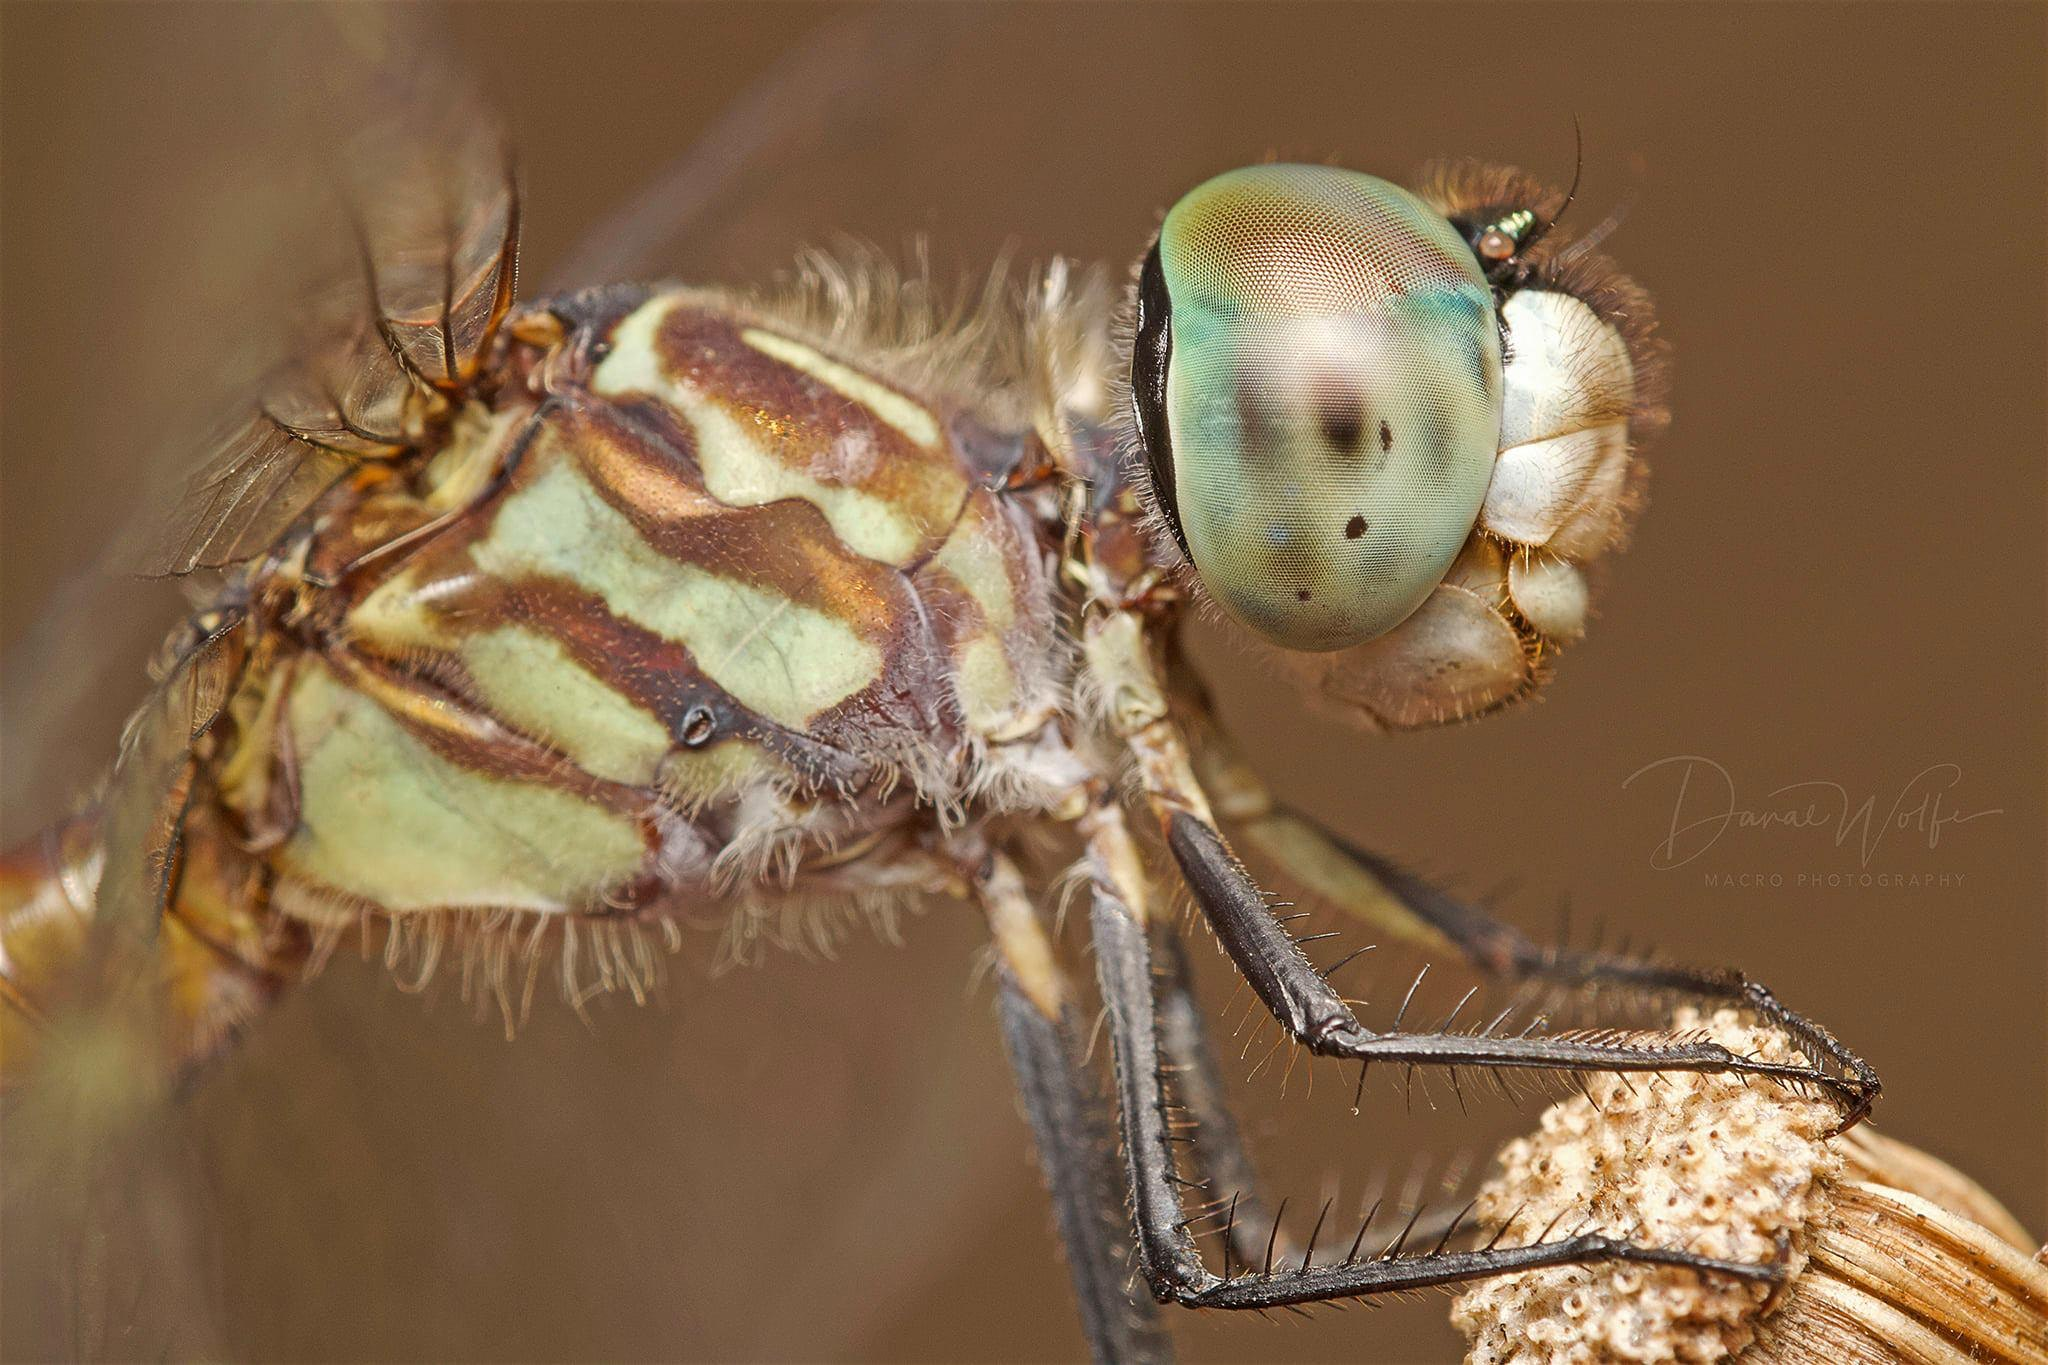 Photo of dragonfly by Danae Wolfe